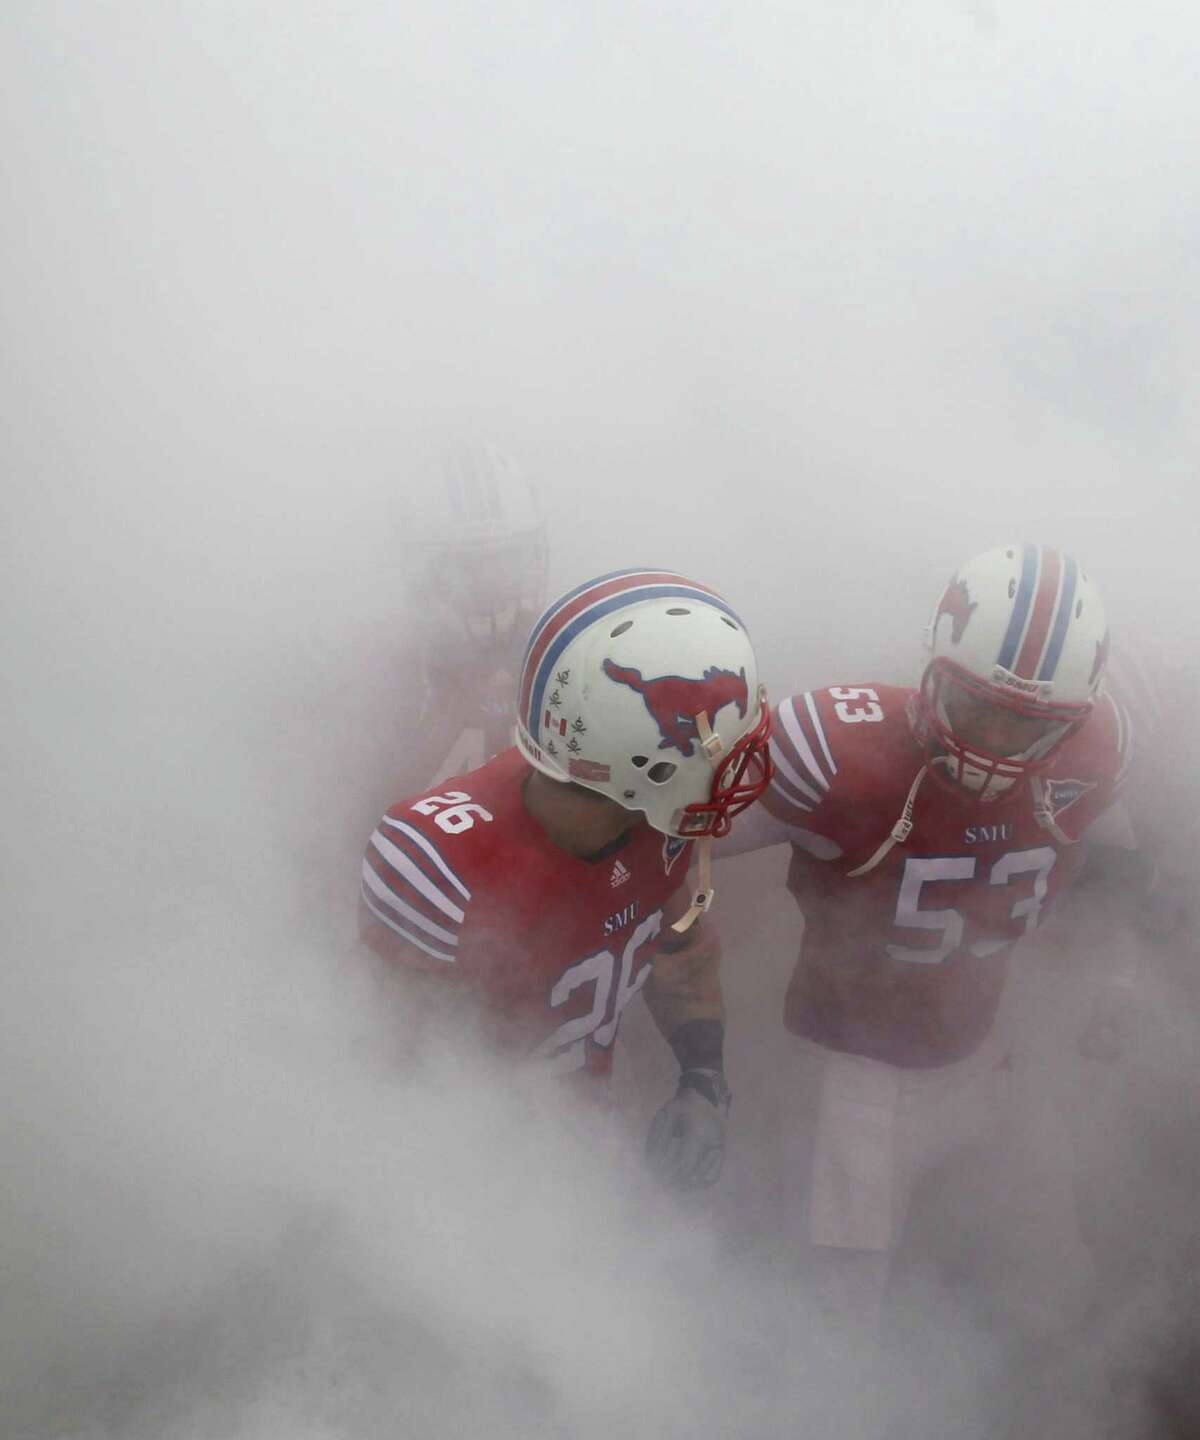 Hawaii Bowl, Dec. 24, SMU vs. Fresno State: SMU senior deep snapper Mark Voosen (53) is from New Braunfels Canyon.Caption: MU DB Brett Haness (26) and DS Mark Voosen (53) wait in the smoke to take the field before the SMU Mustangs vs. the Rice Owls college football game at Gerald J. Ford Stadium in Dallas on Saturday, November 26, 2011. (Louis DeLuca/The Dallas Morning News)